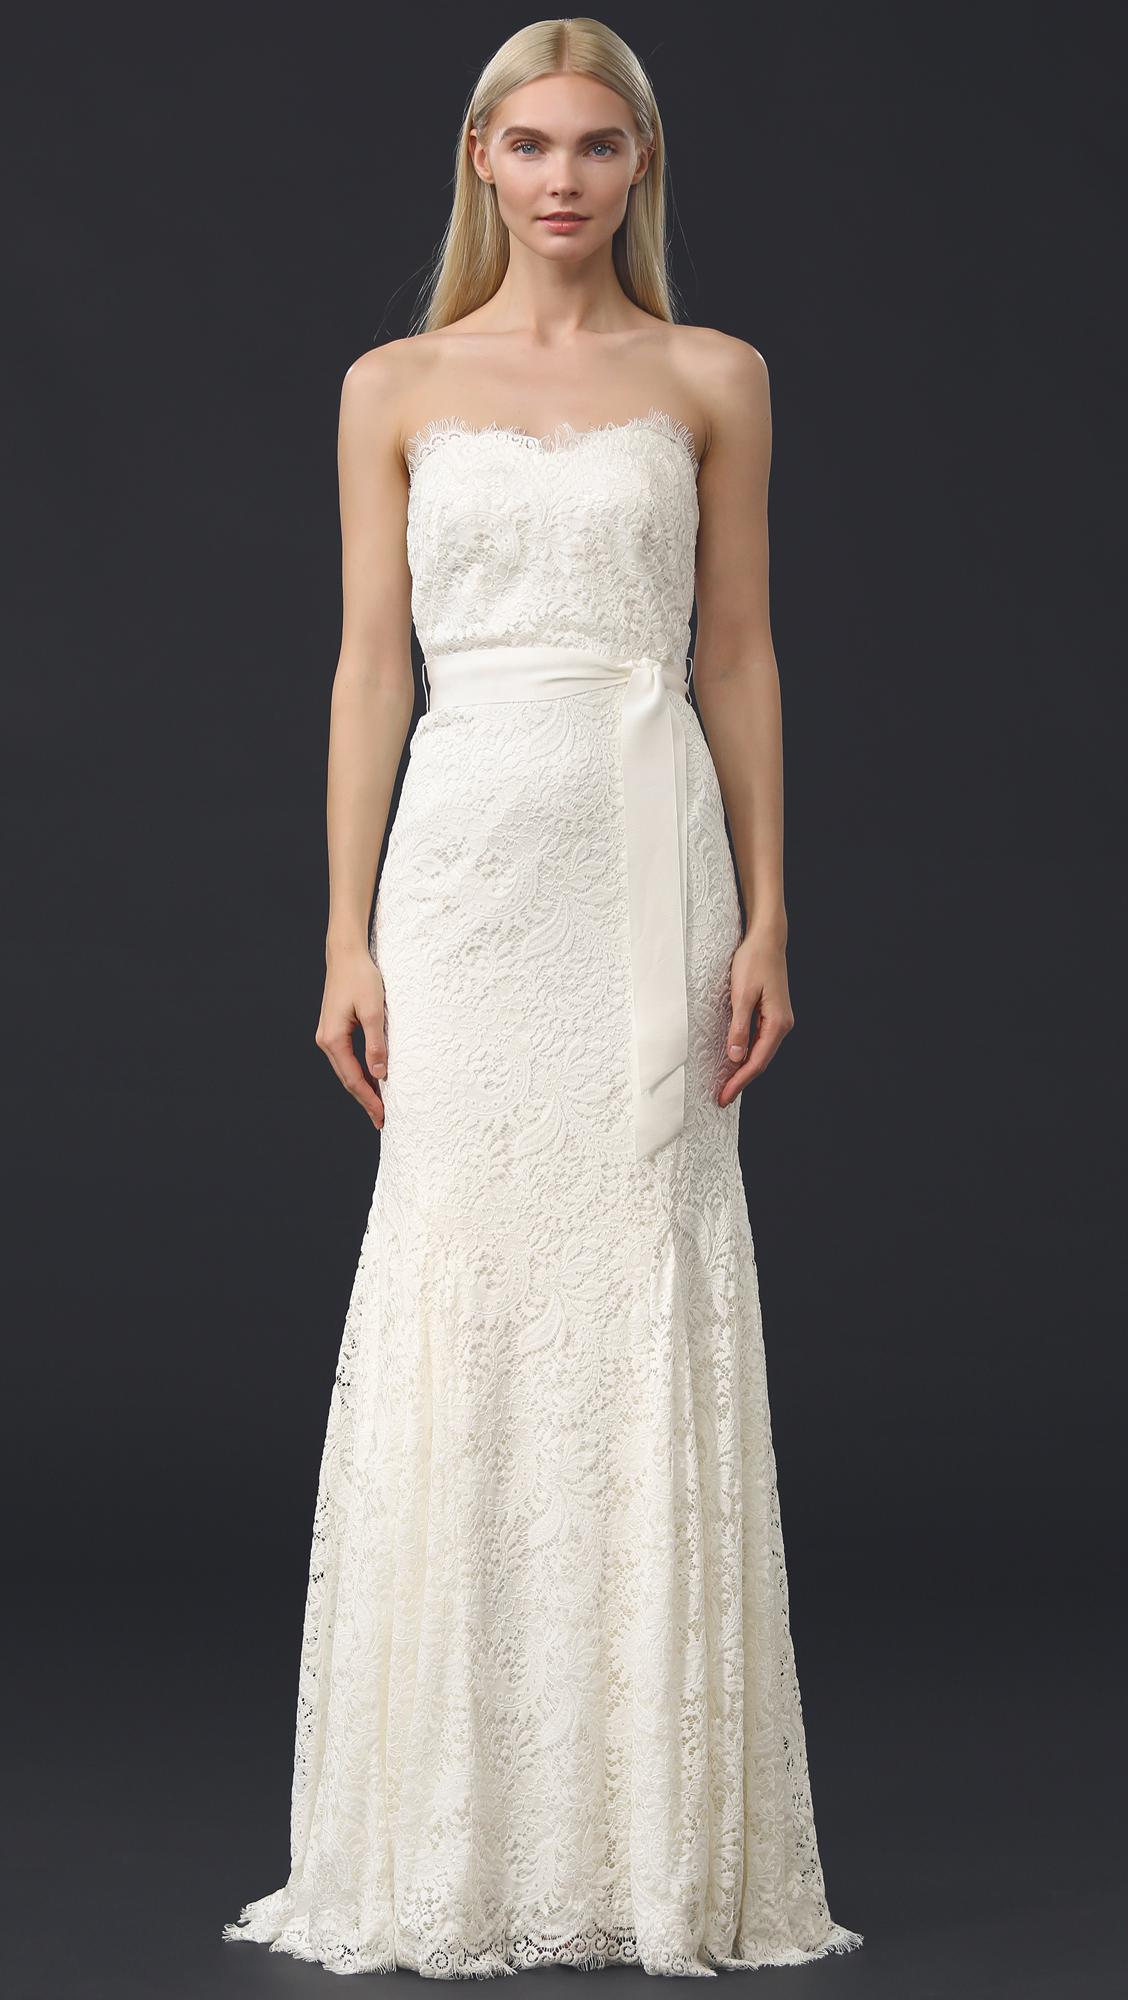 759b6f4c68f THEIA - White Sweetheart Strapless Lace Gown - Lyst. View fullscreen